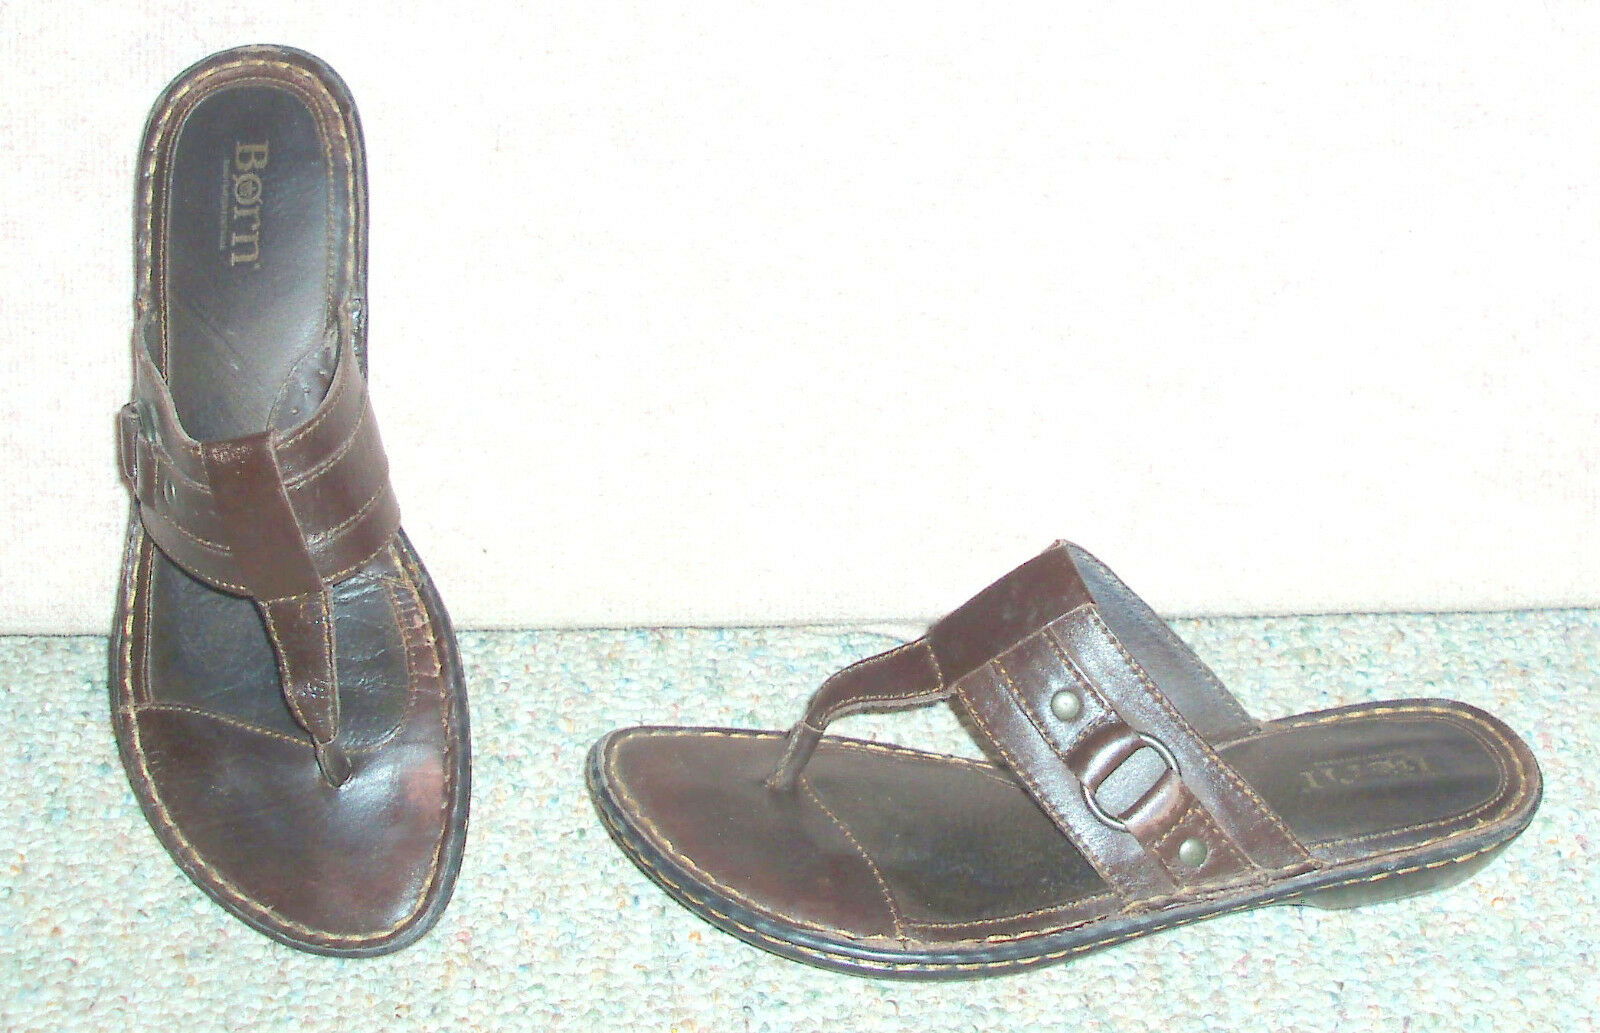 Women's brown leather upper / BORN slip on sandals / upper shoes, sz 9 M 374594